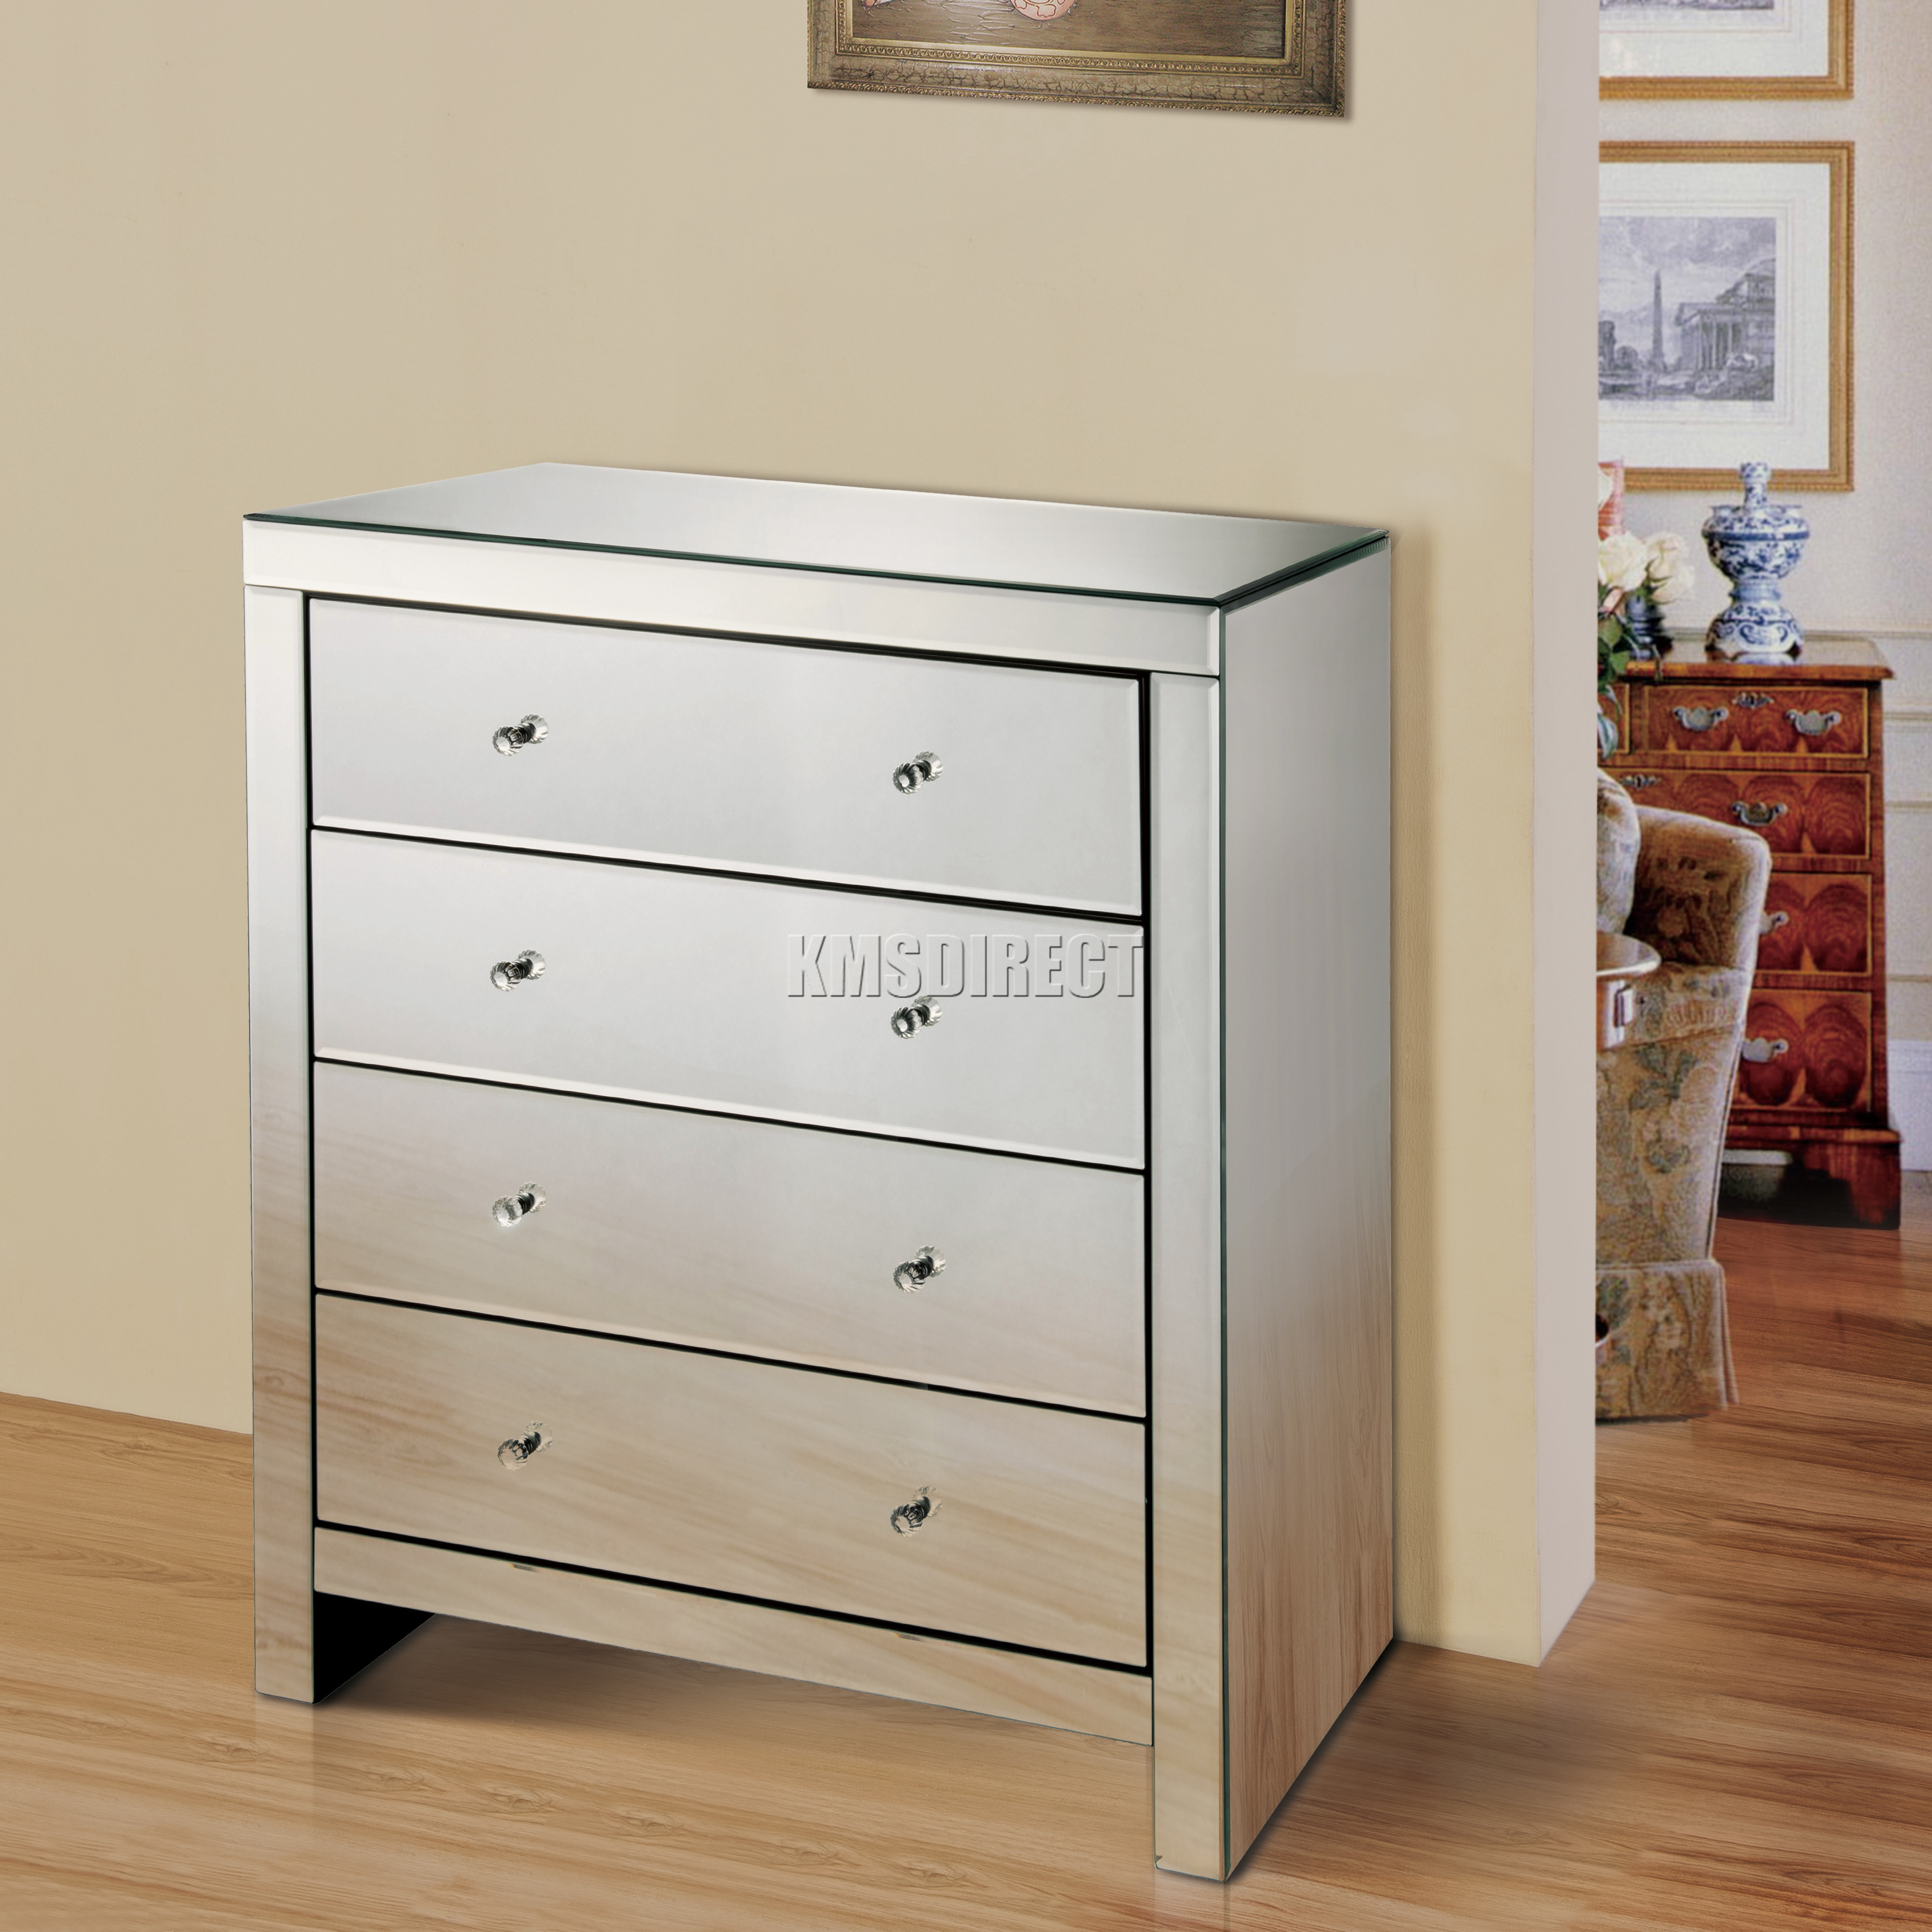 Captivating Sentinel FoxHunter Mirrored Furniture Glass 4 Drawer Chest Cabinet Table  Bedroom MC01 New